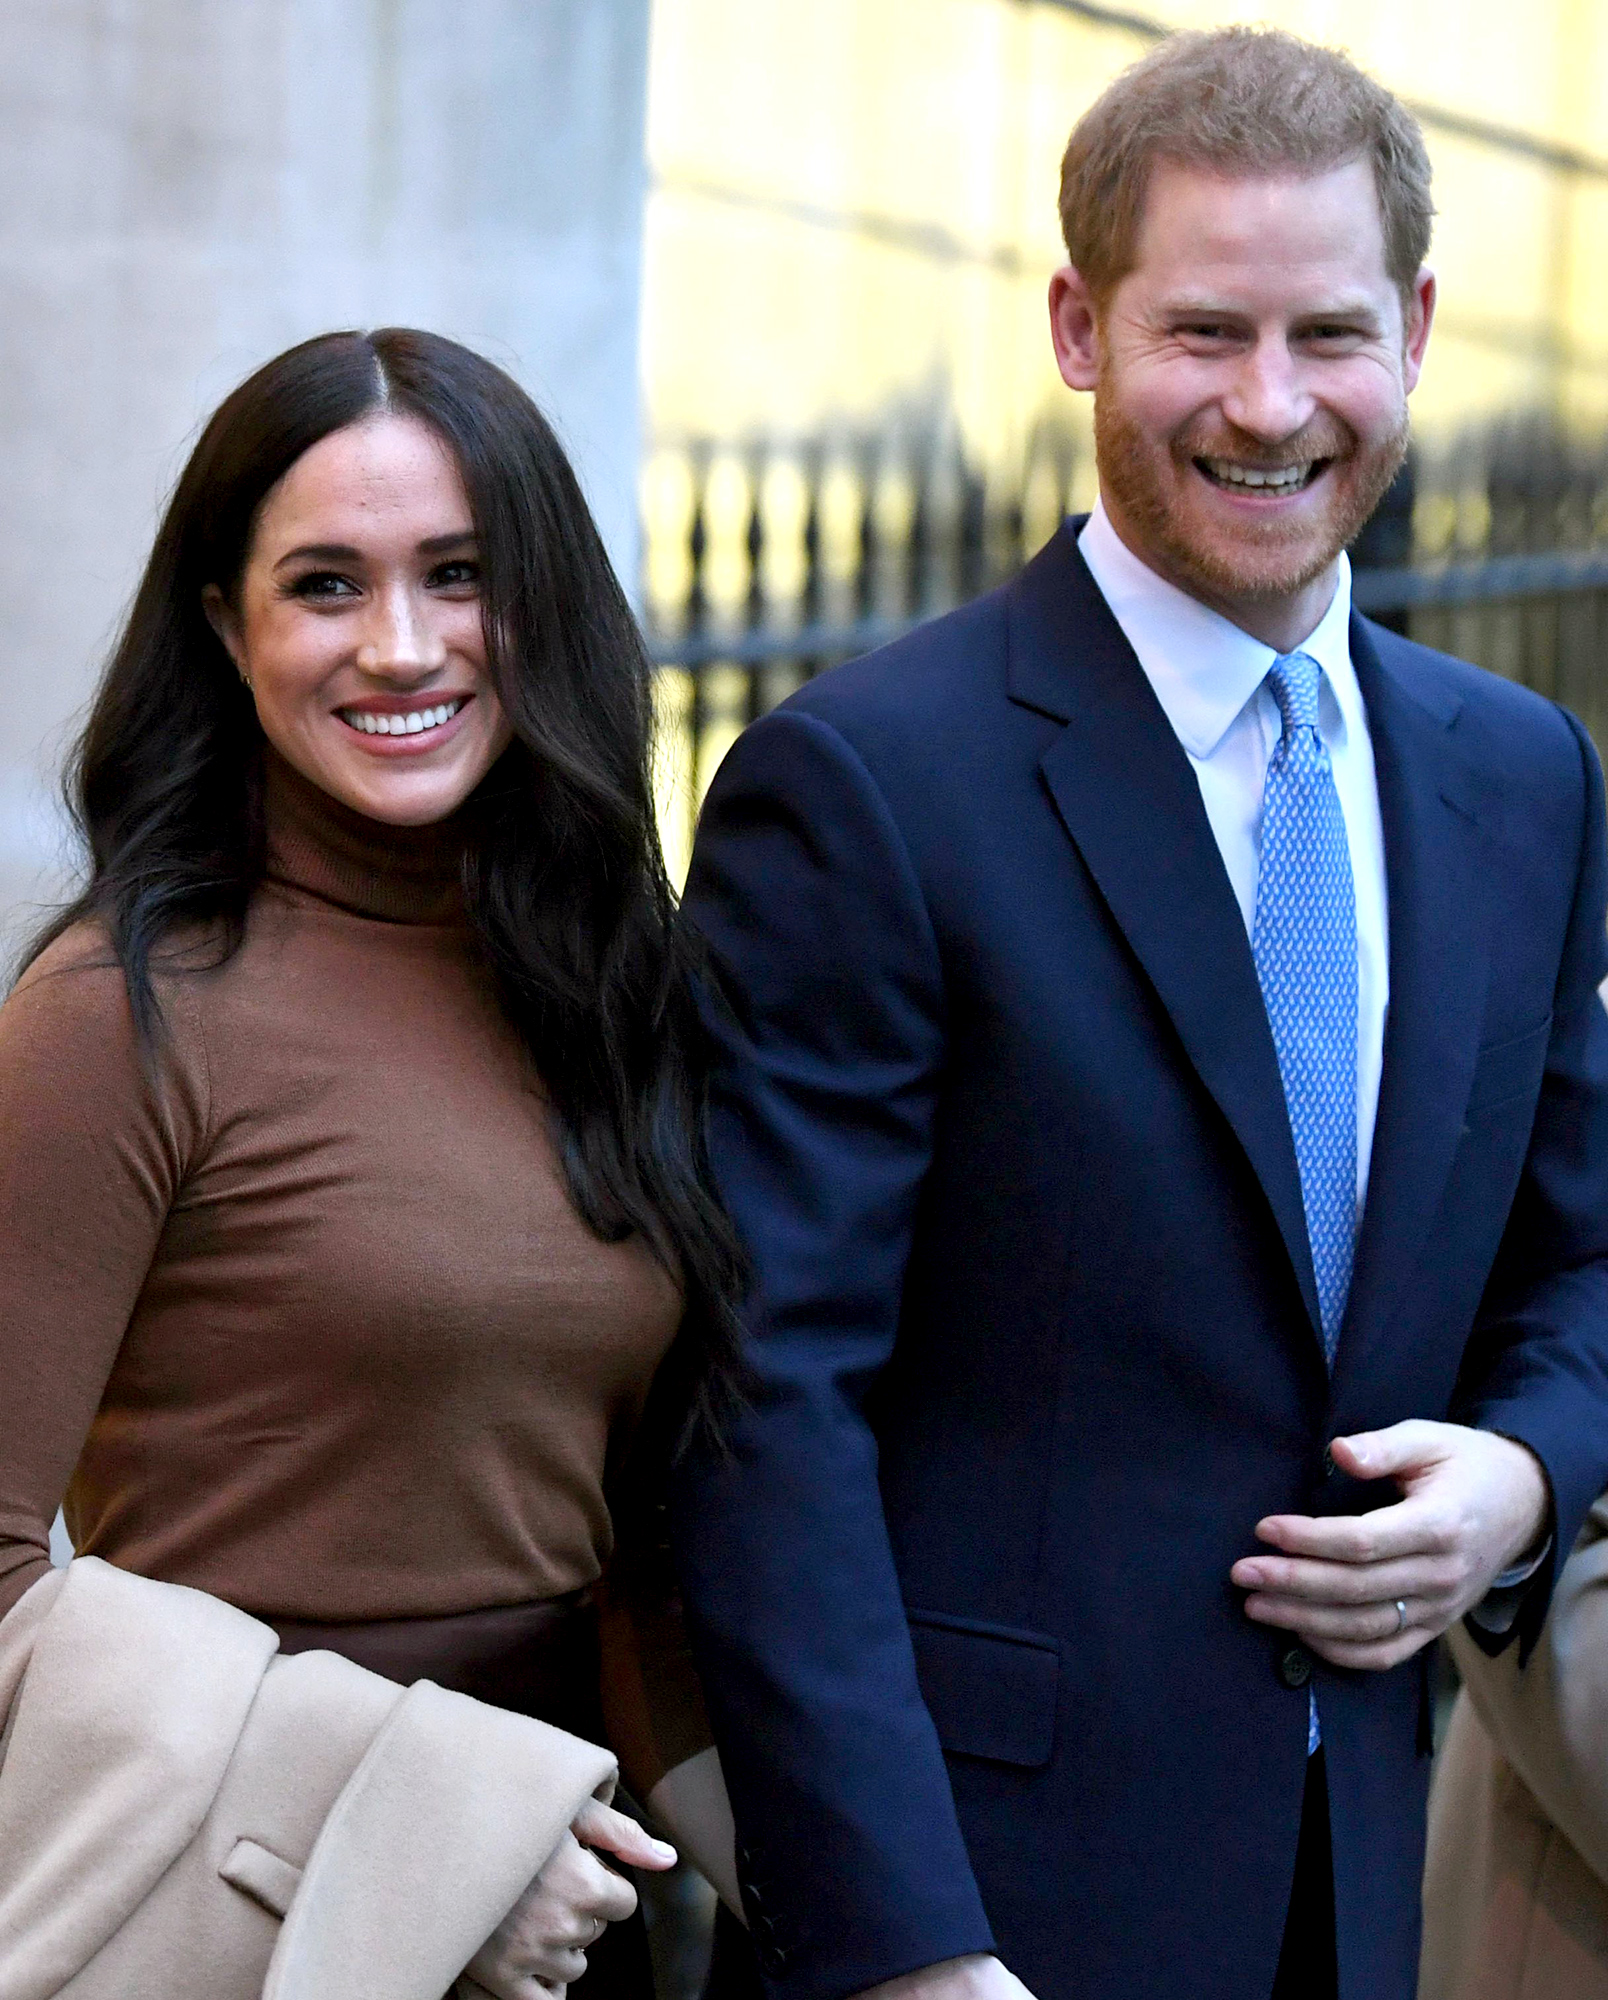 Prince Harry and Meghan Markle Sign New Deal With Speaking Agency Following Royal Stepback